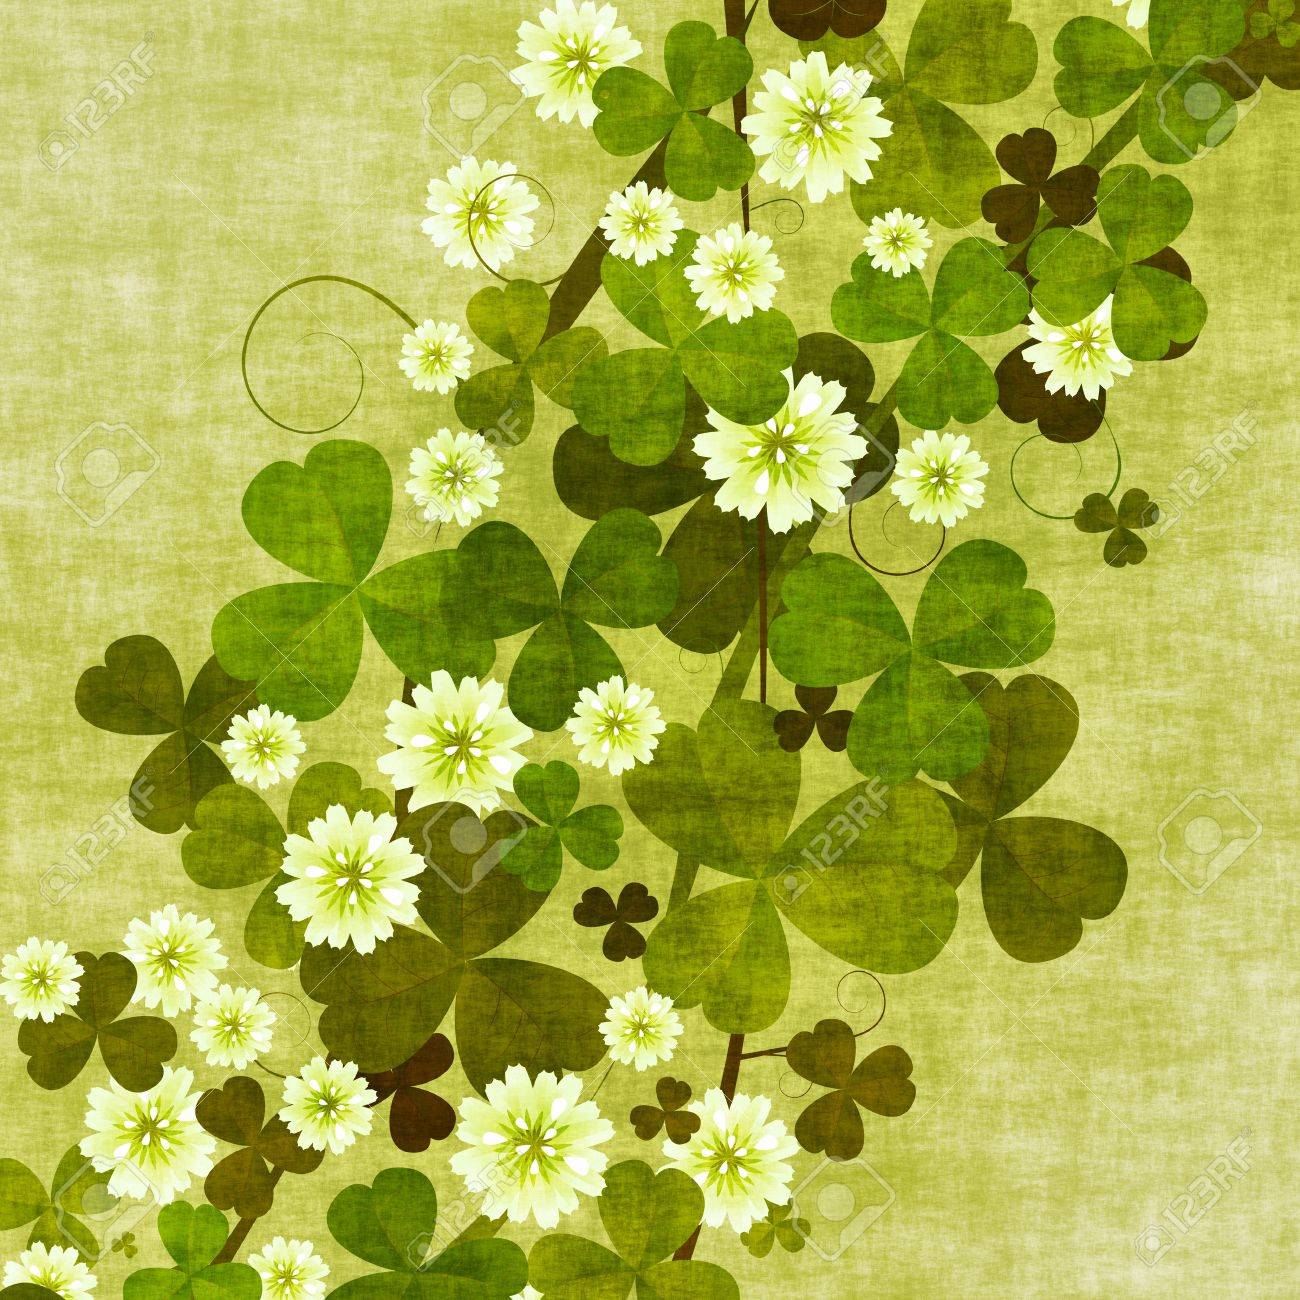 Grunge Floral Background With Clover Leaves And Flowers Stock Photo